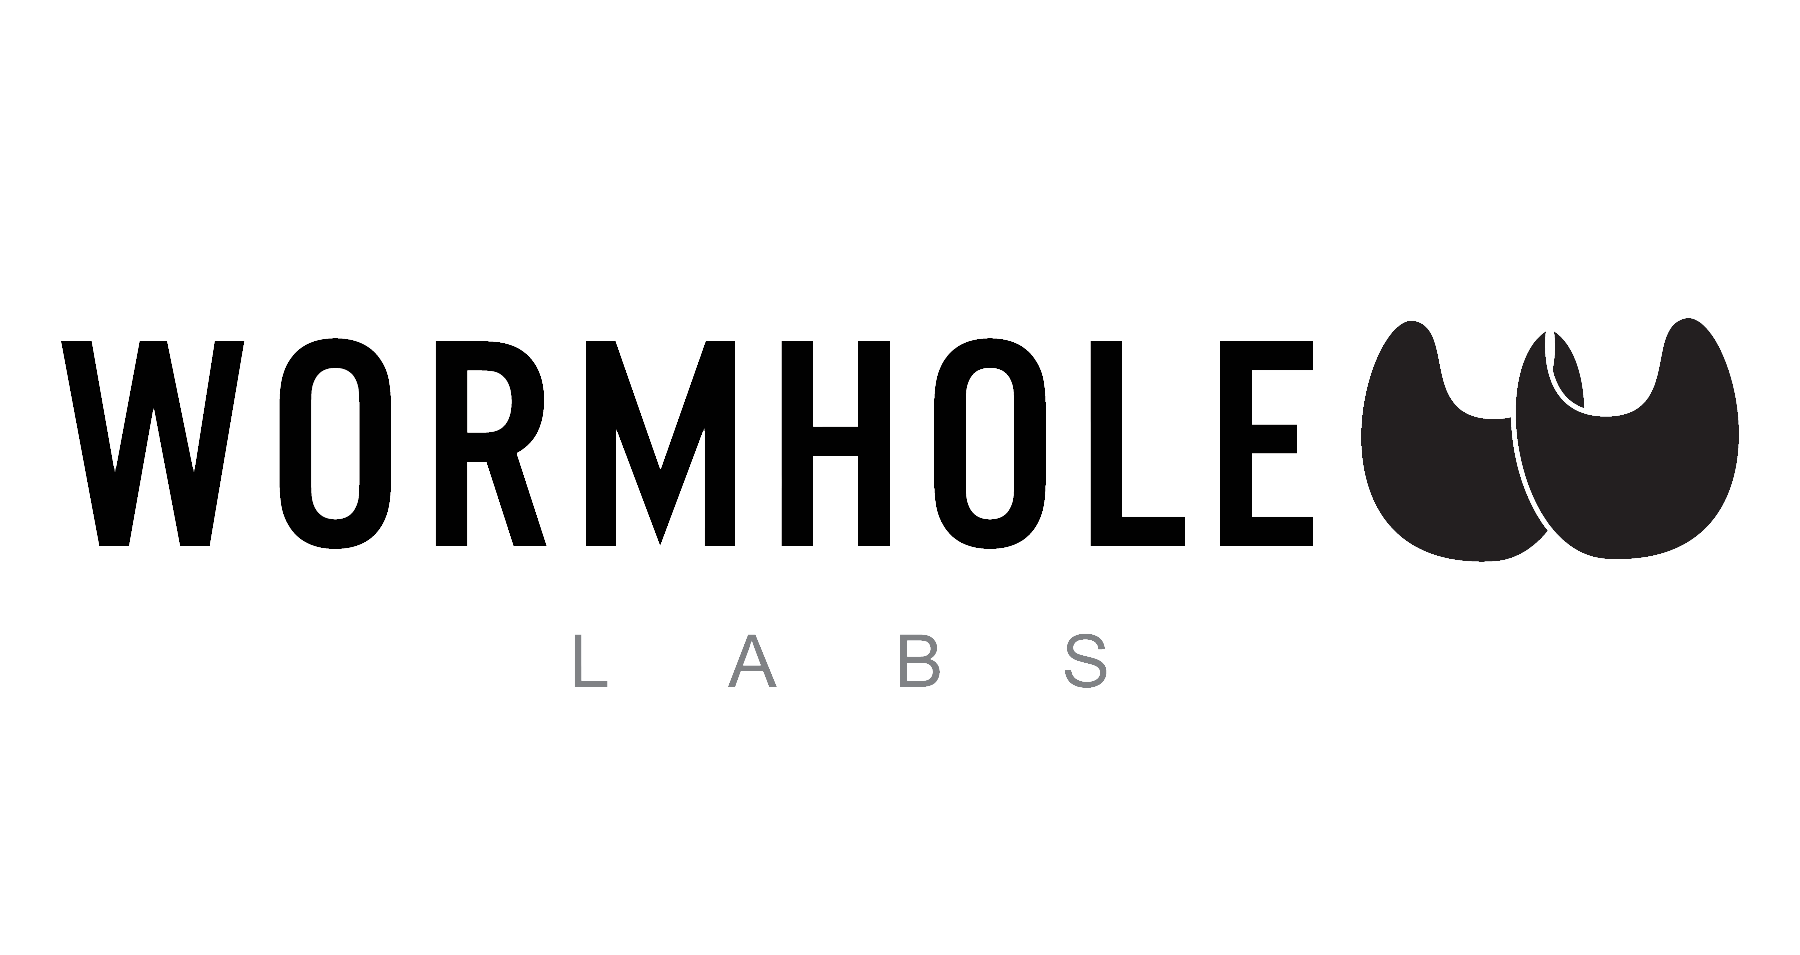 Wormhole Labs, creator of Wormhole Twitch Extension